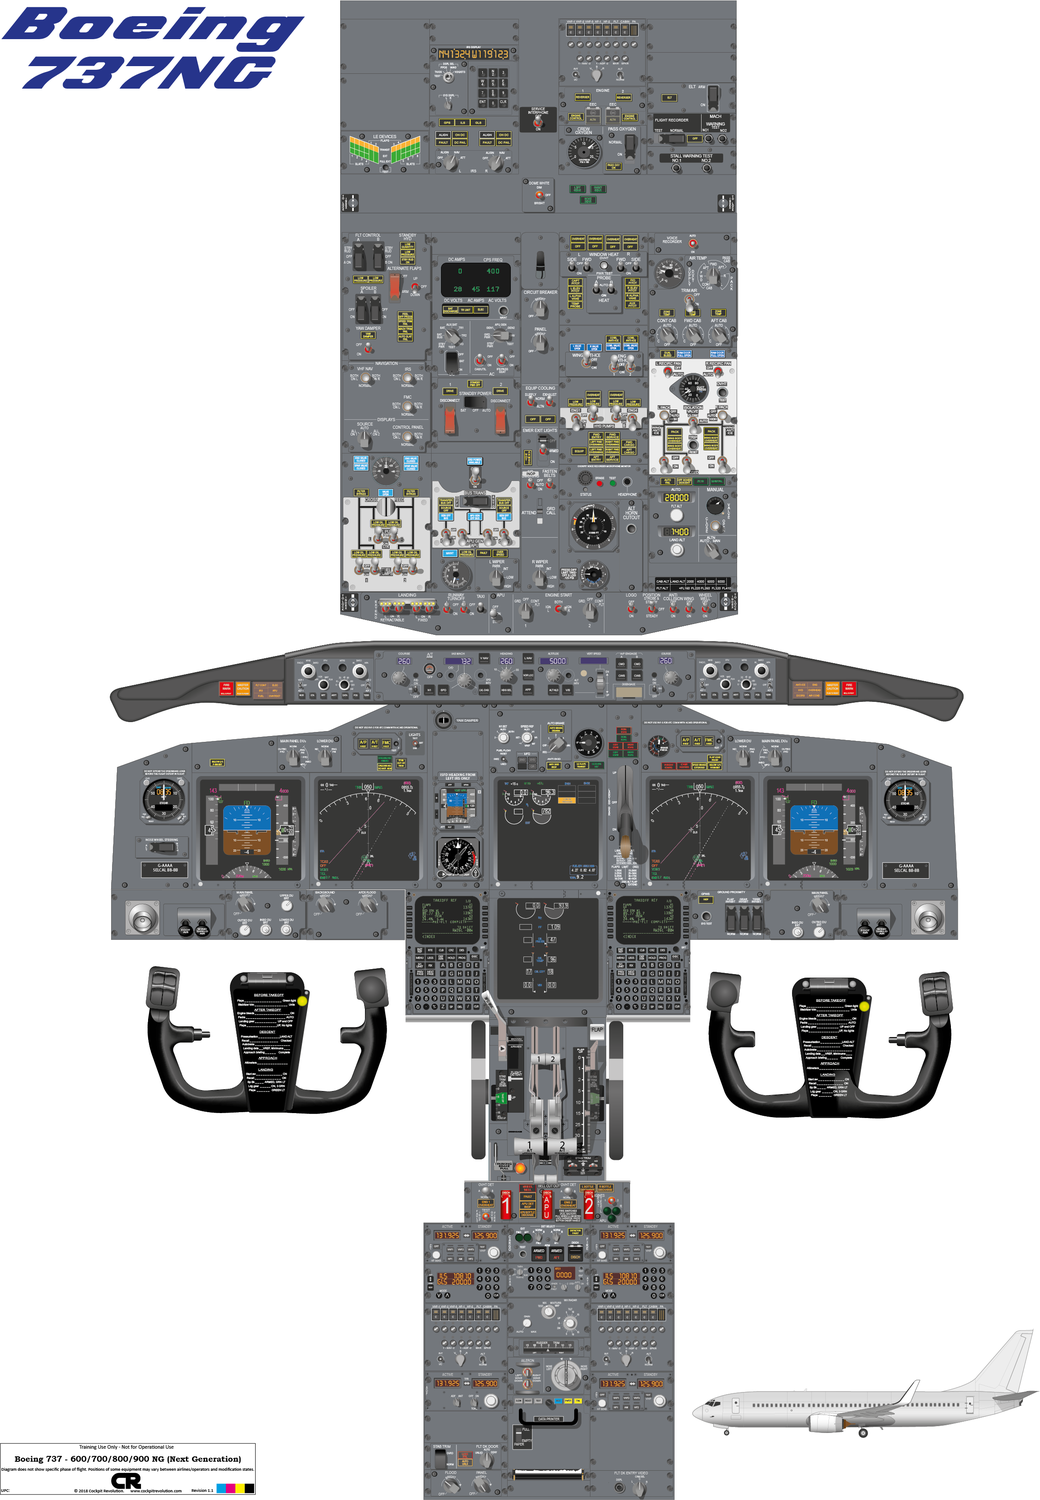 Boeing 737-NG & MAX Cockpit Posters - Digital Download